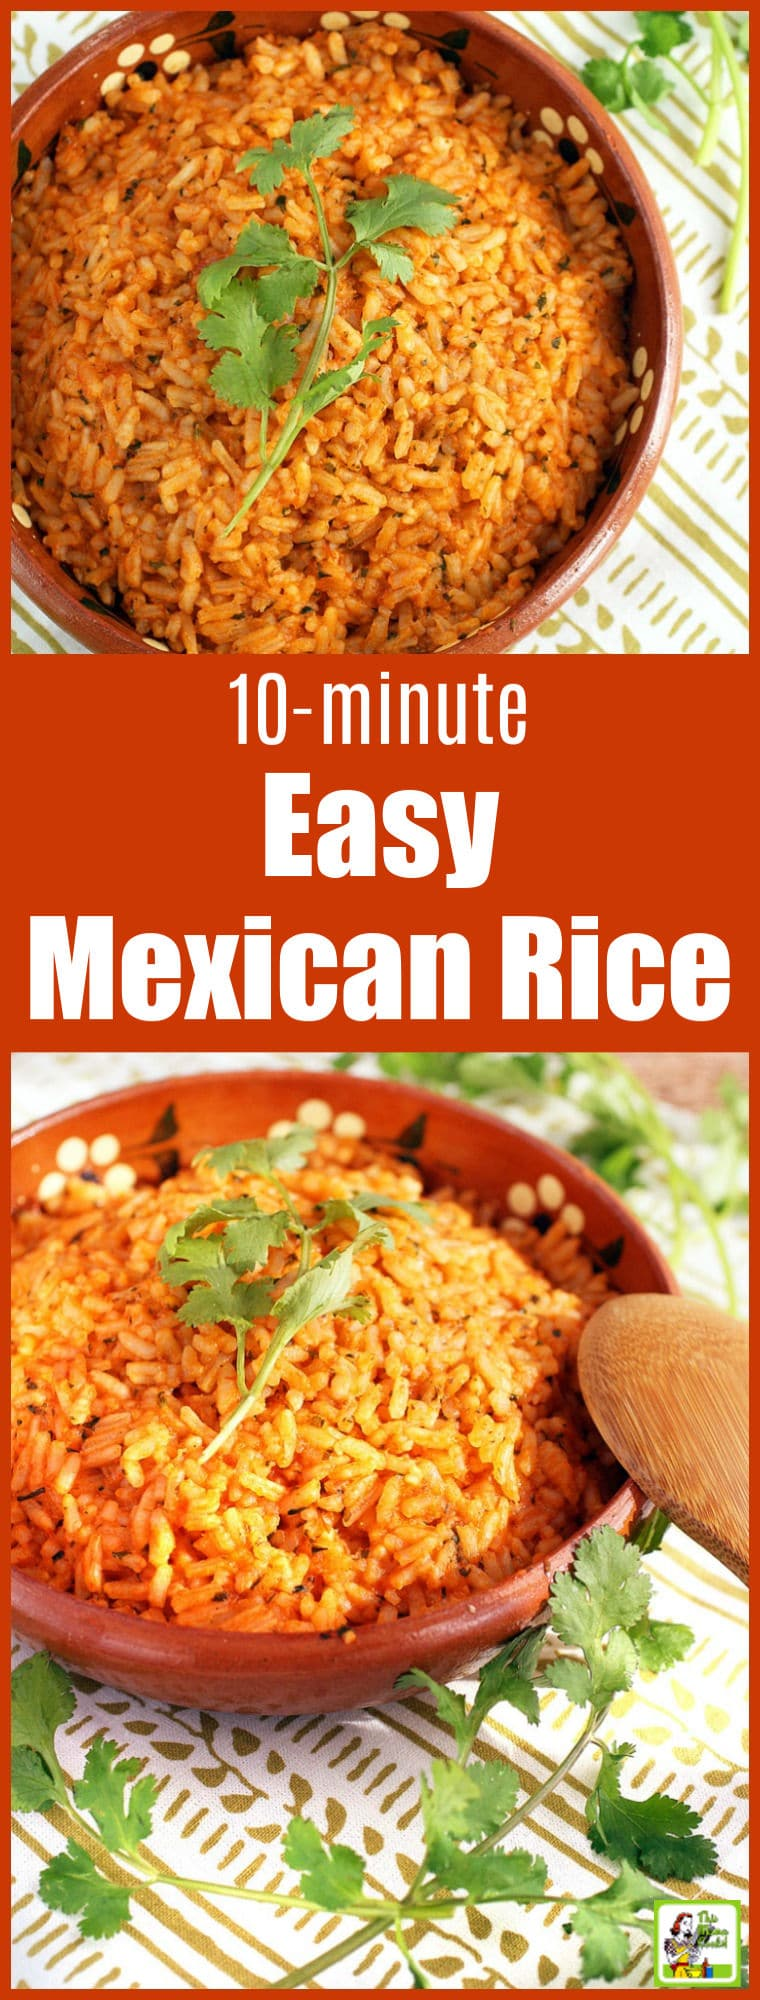 Easy restaurant-style Mexican rice takes only 10 minutes. Perfect for Taco Tuesday or to serve with your favorite burritos or carne asada. Can be made vegan or vegetarian. Naturally gluten free. #rice #mexicanfoodrecipes #mexican #mexicanfood #mexicanrecipes #tacotuesday #copycatrecipes #copycat #vegetarian